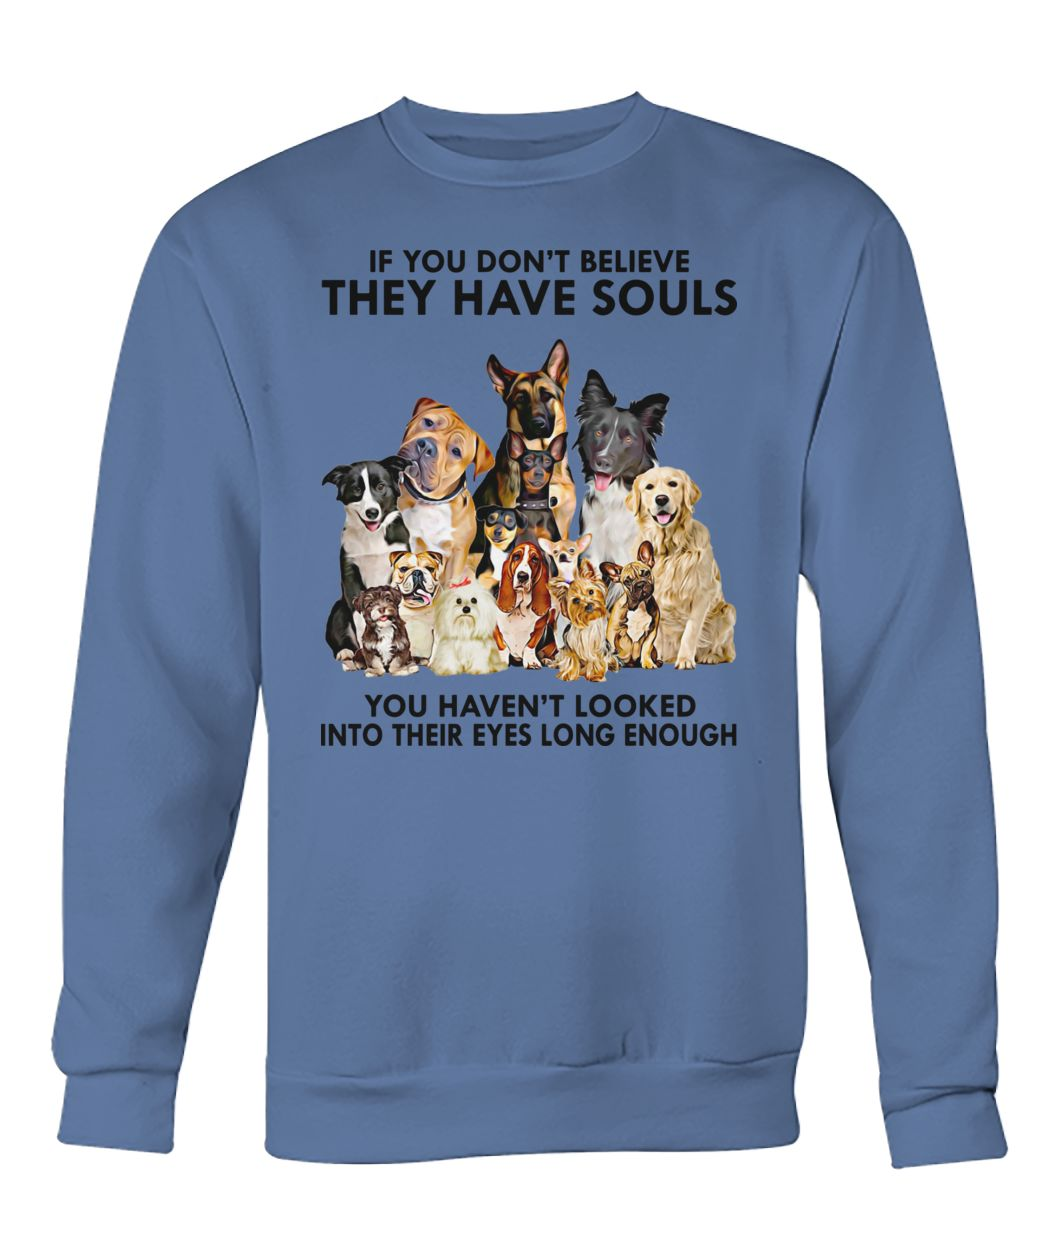 Dogs if you don't believe they have souls crew neck sweatshirt